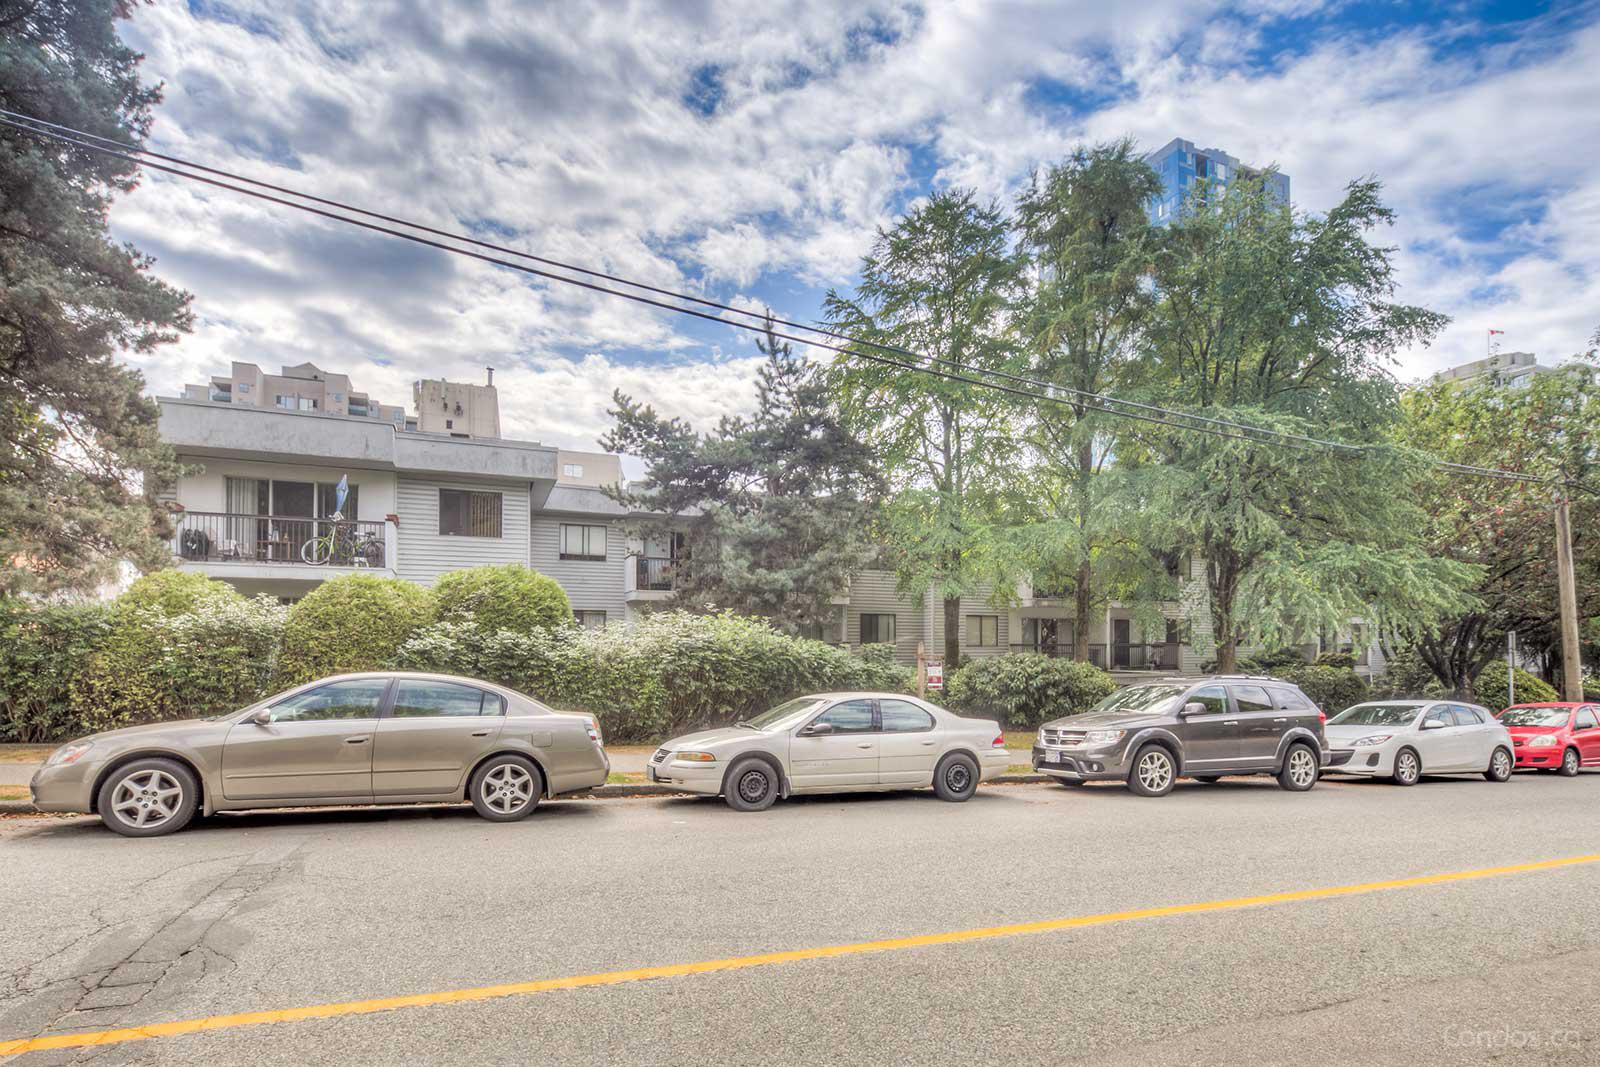 Shanley Manor at 428 Agnes St, New Westminster 0